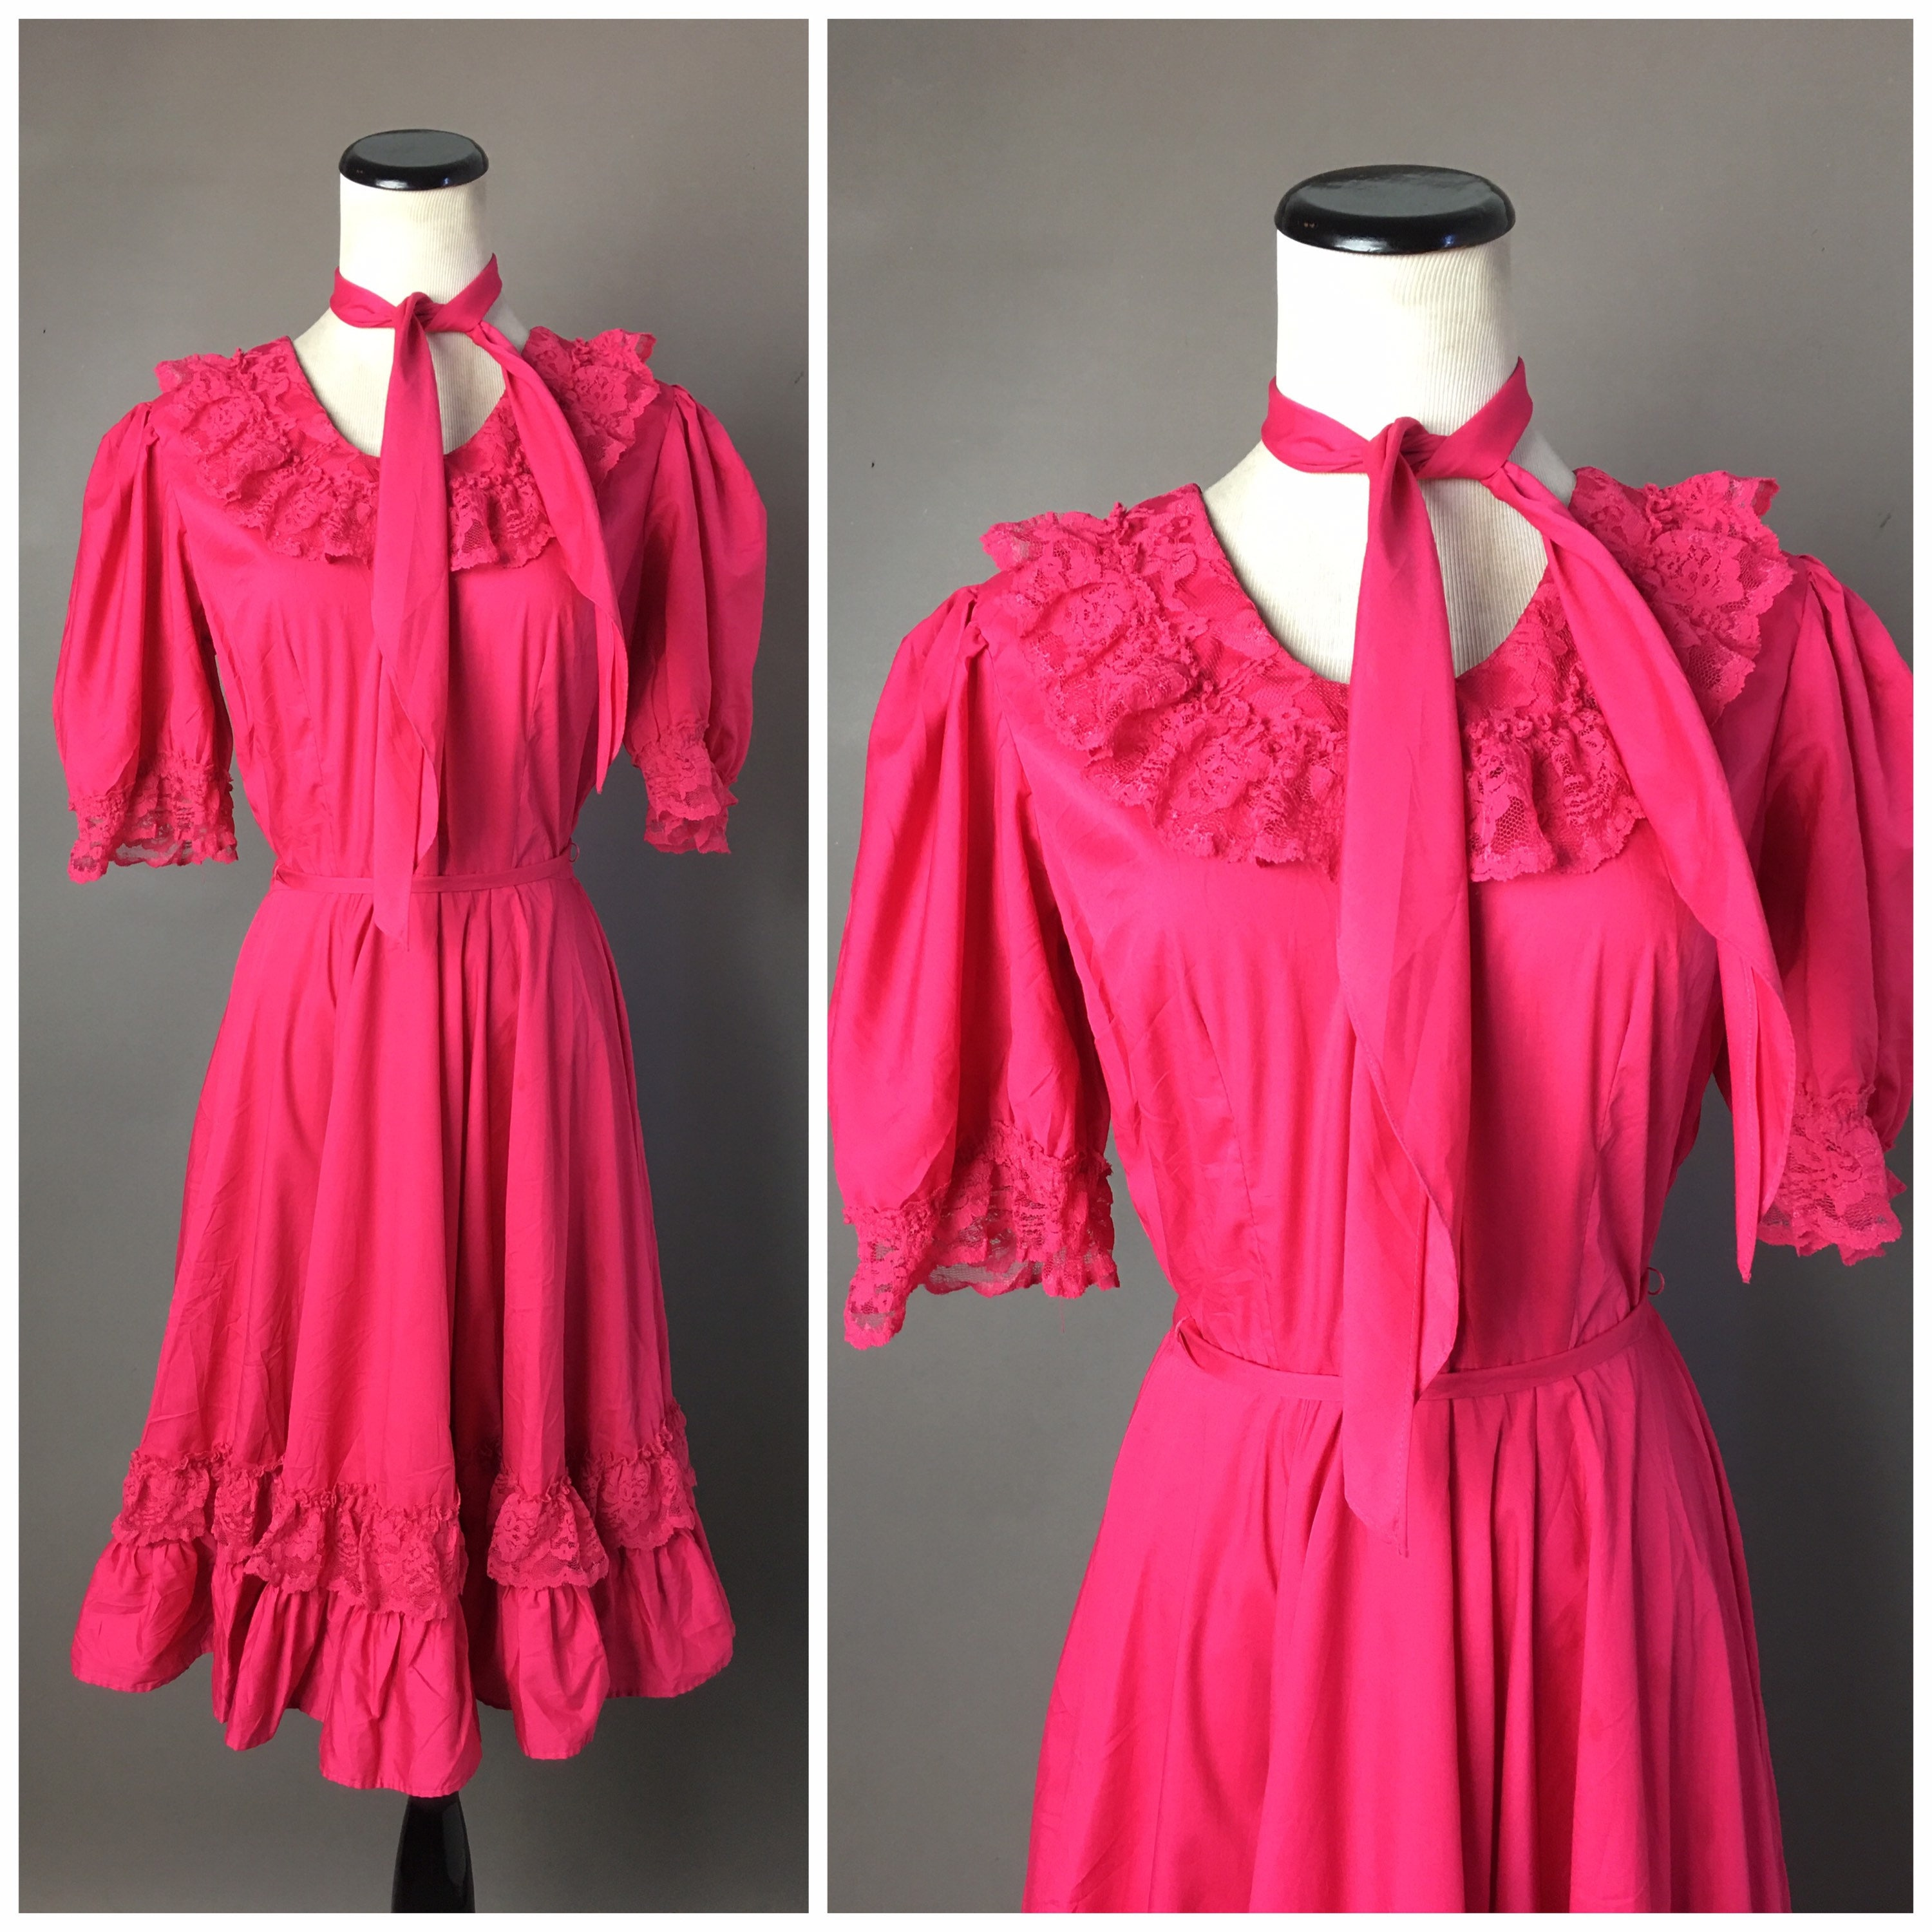 Vintage Scarf Styles -1920s to 1960s Vintage 70S Dress1970S Hot Pink Fit  Flare Square Dancing Party Prom 4733 $48.00 AT vintagedancer.com